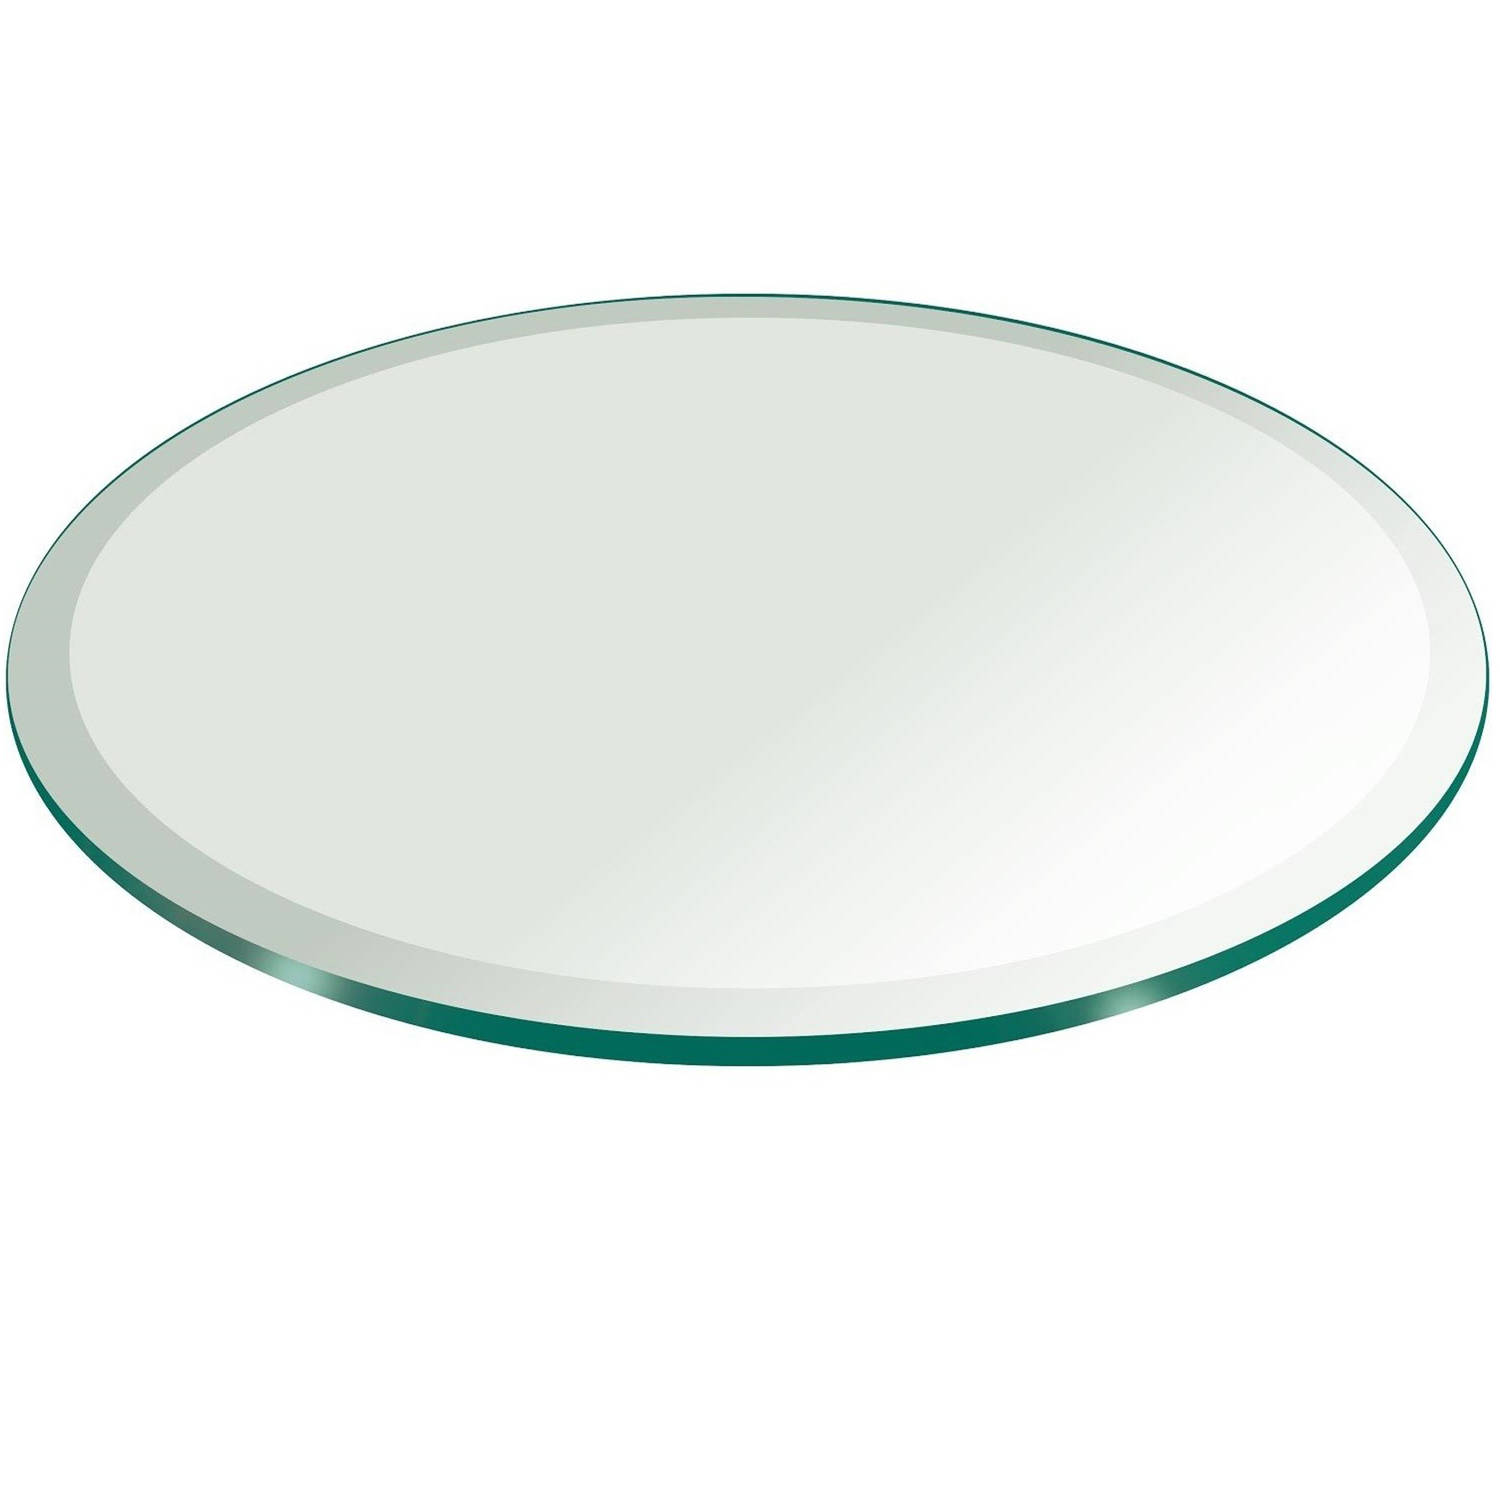 36 Round Glass Table Top Replacement Round Designs